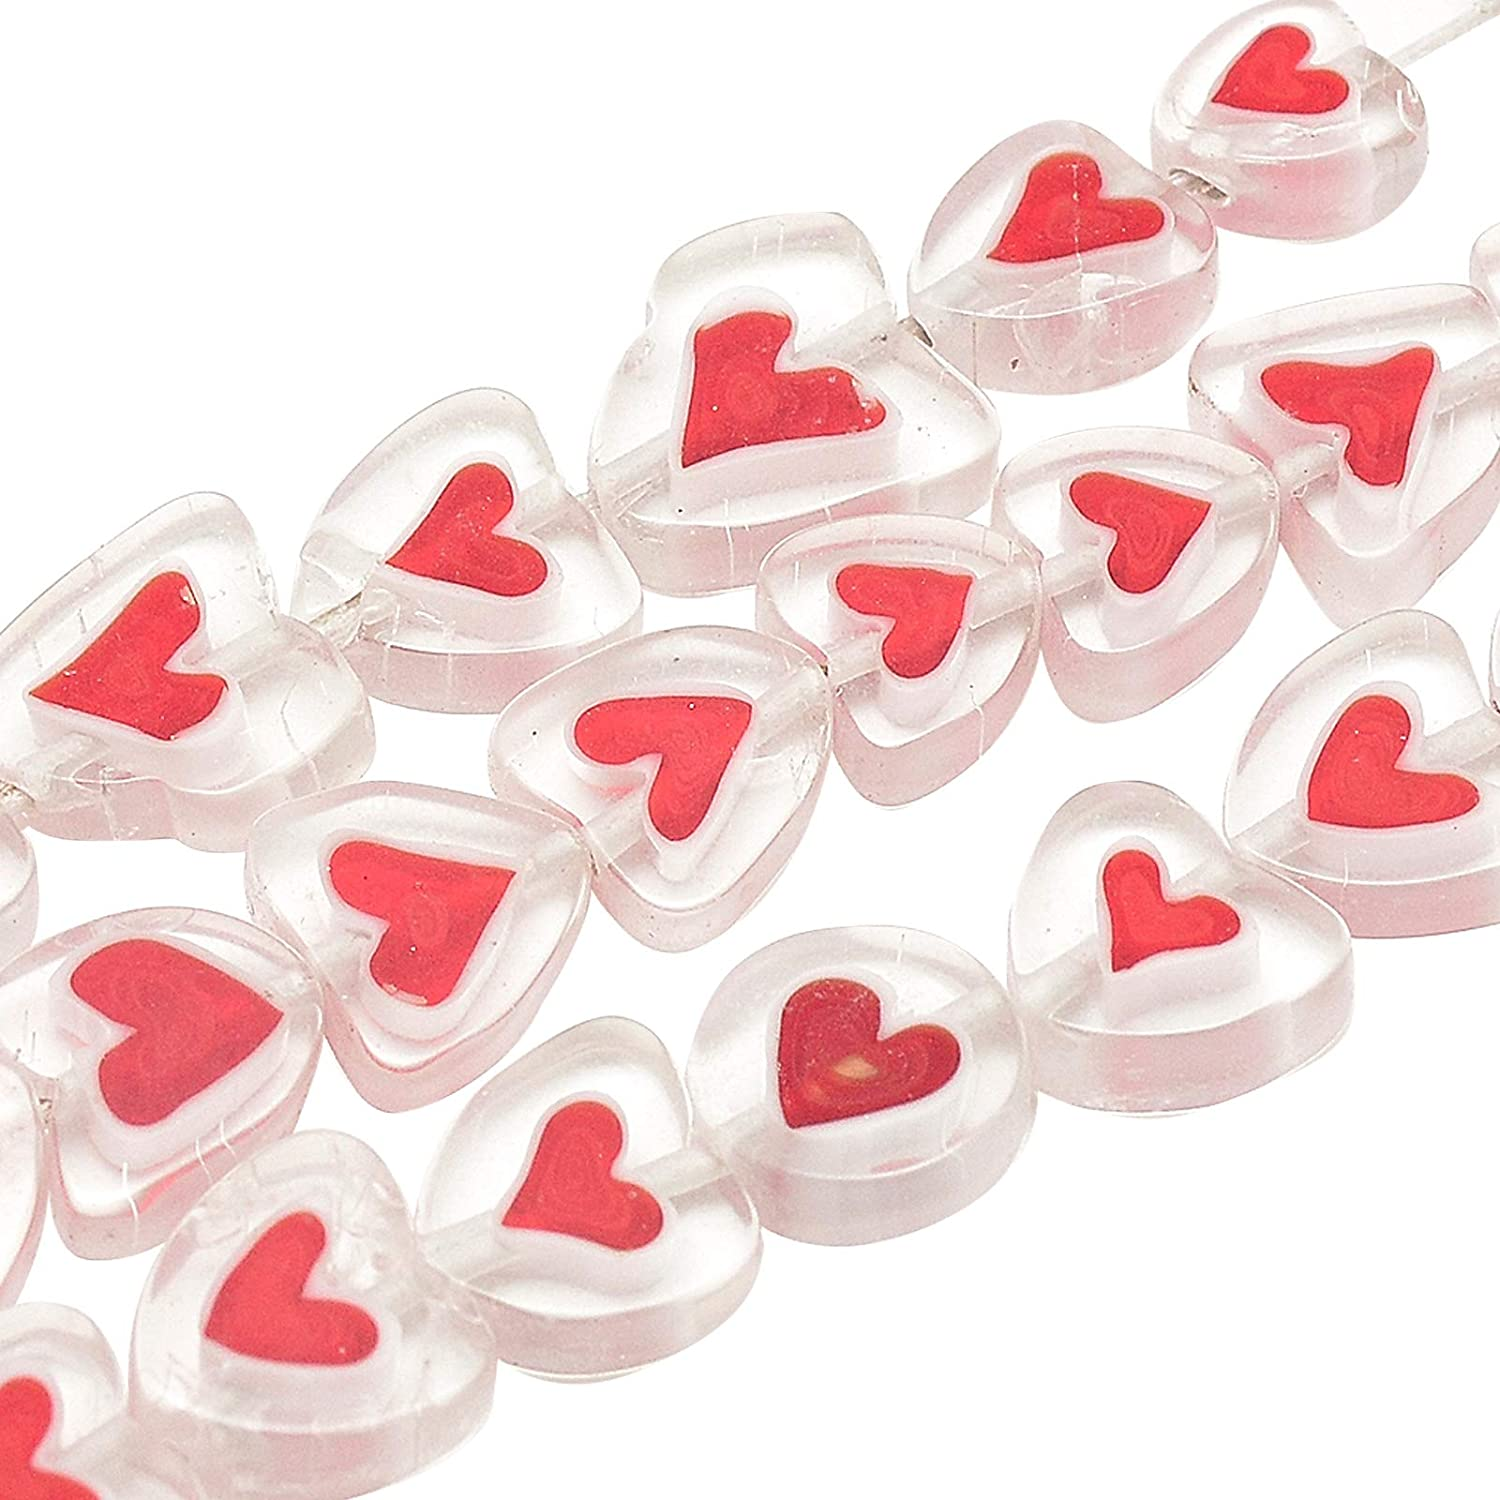 arricraft 36 Pcs Heart Beads, Handmade Lampwork Beads Spacer, Glass Beads for Jewelry Making, Red